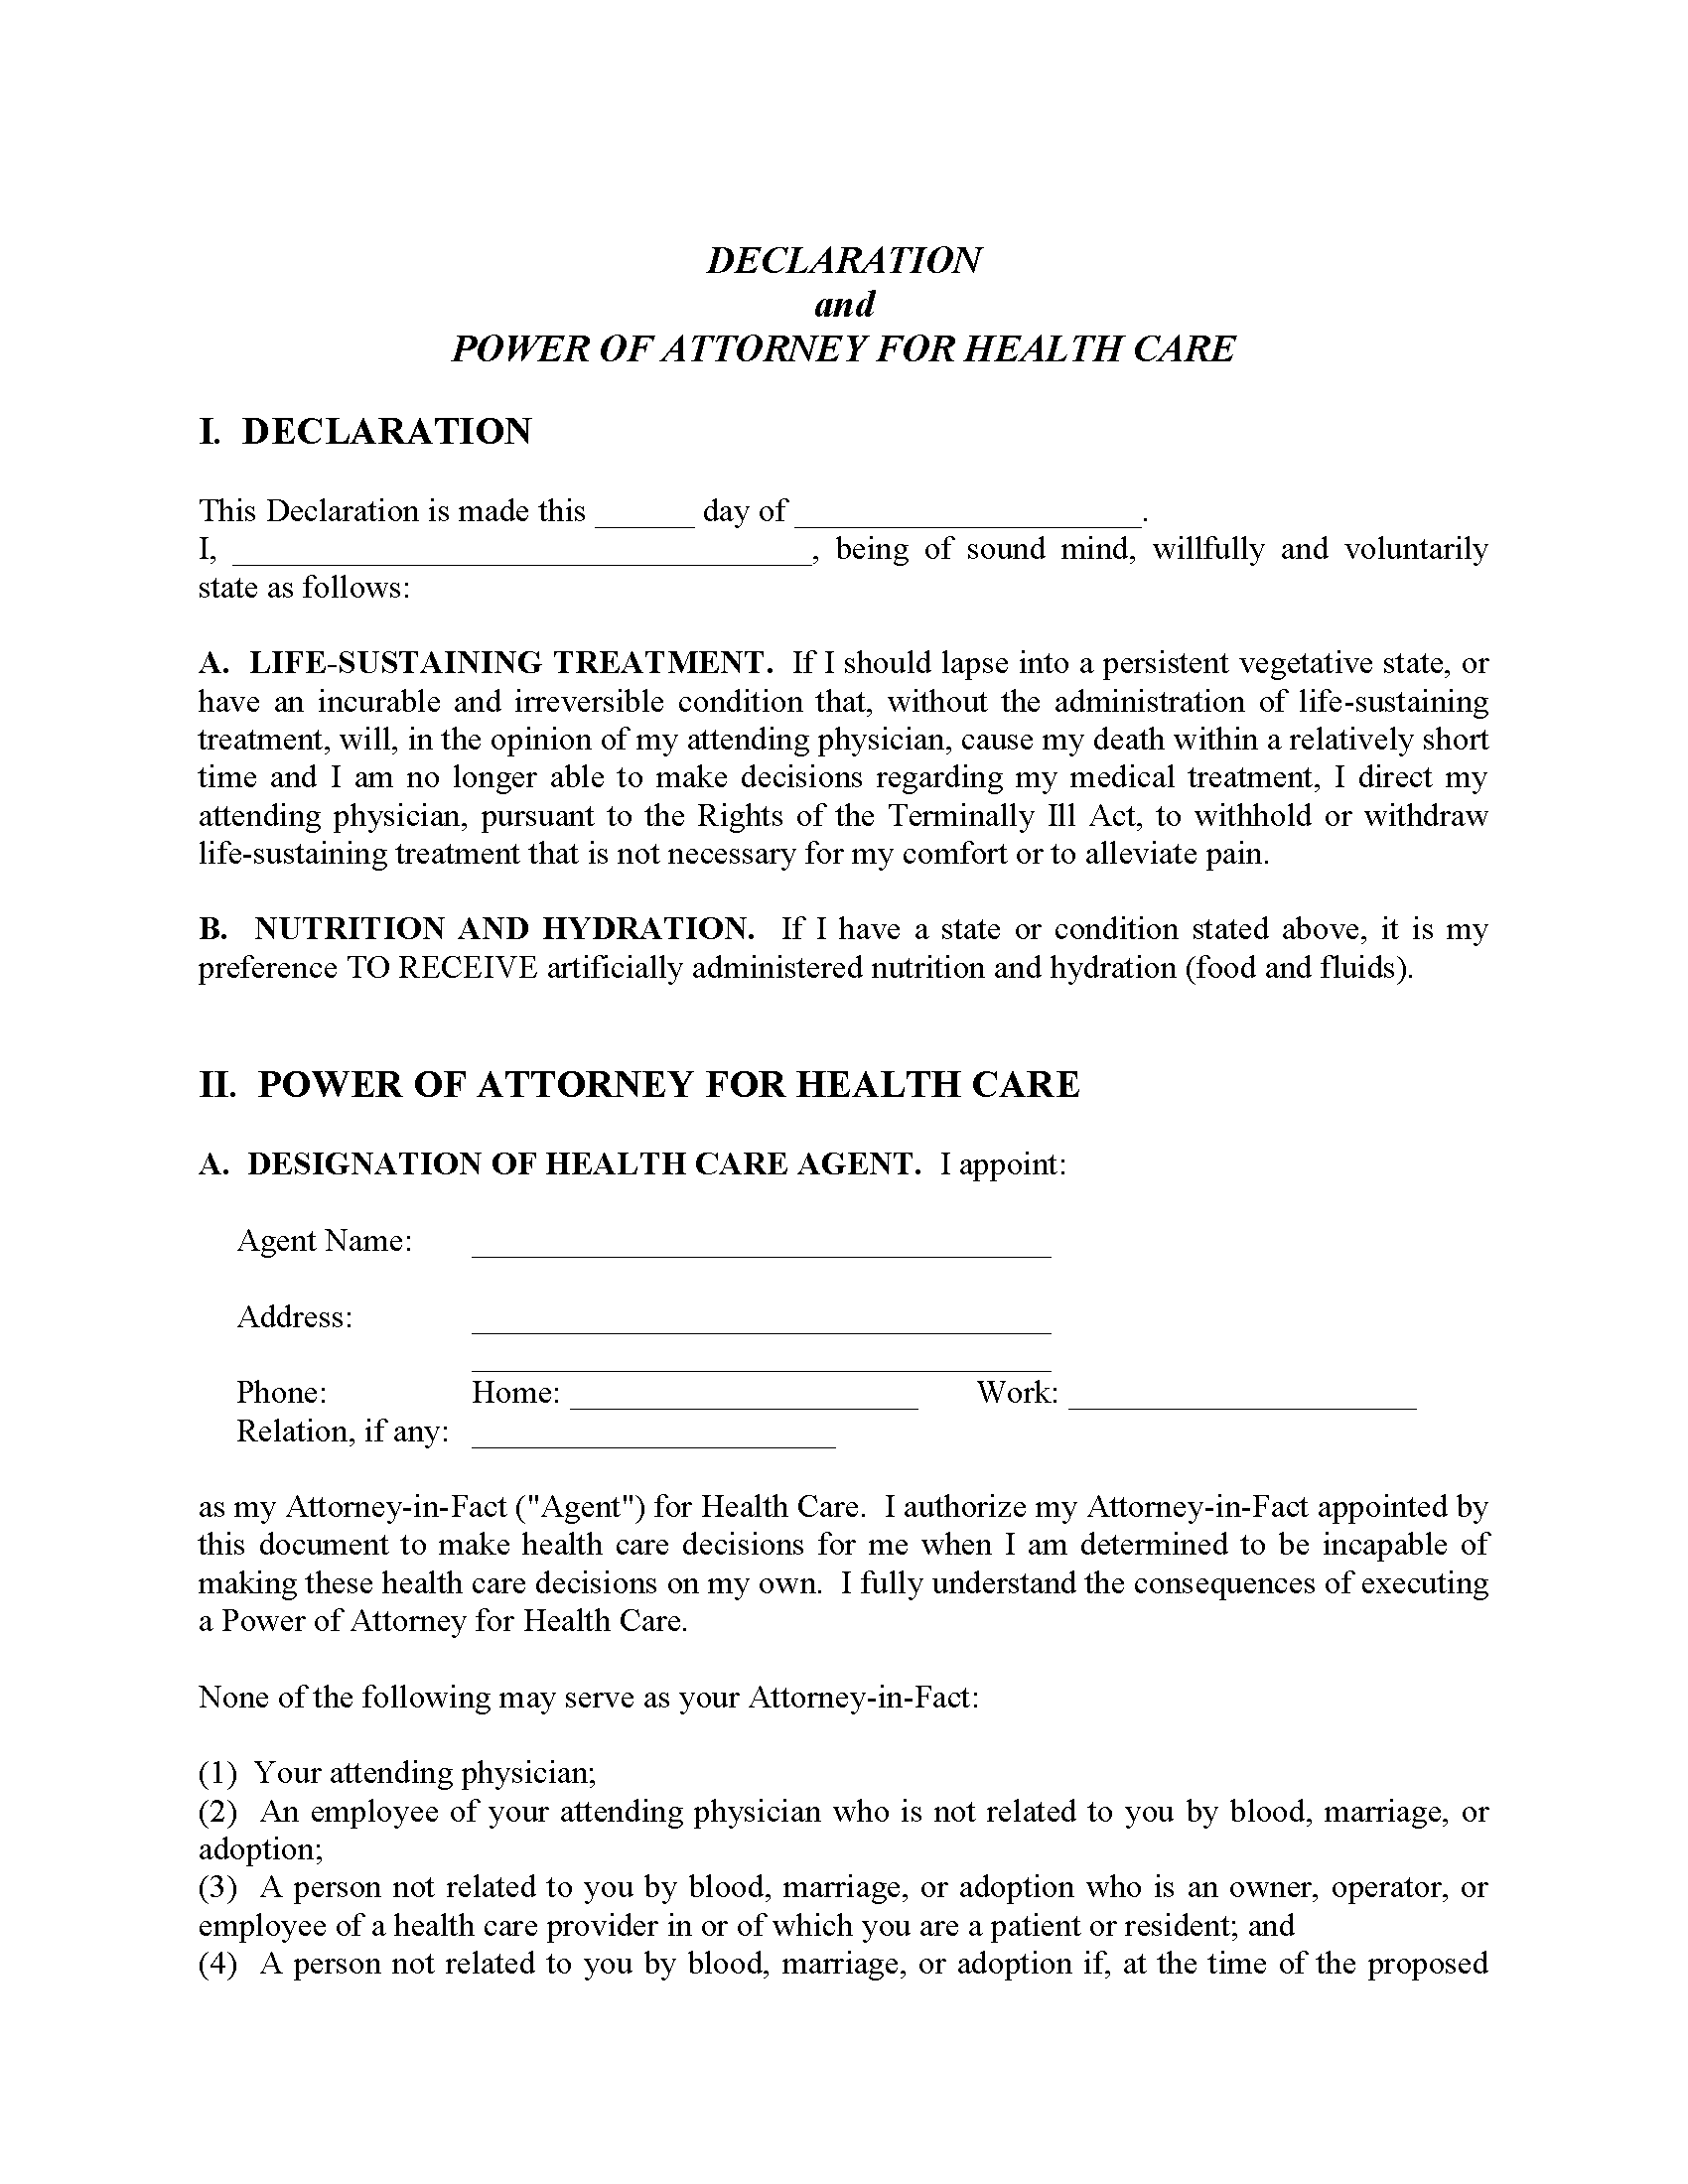 Mississippi Living Will Form Free Printable Legal Forms